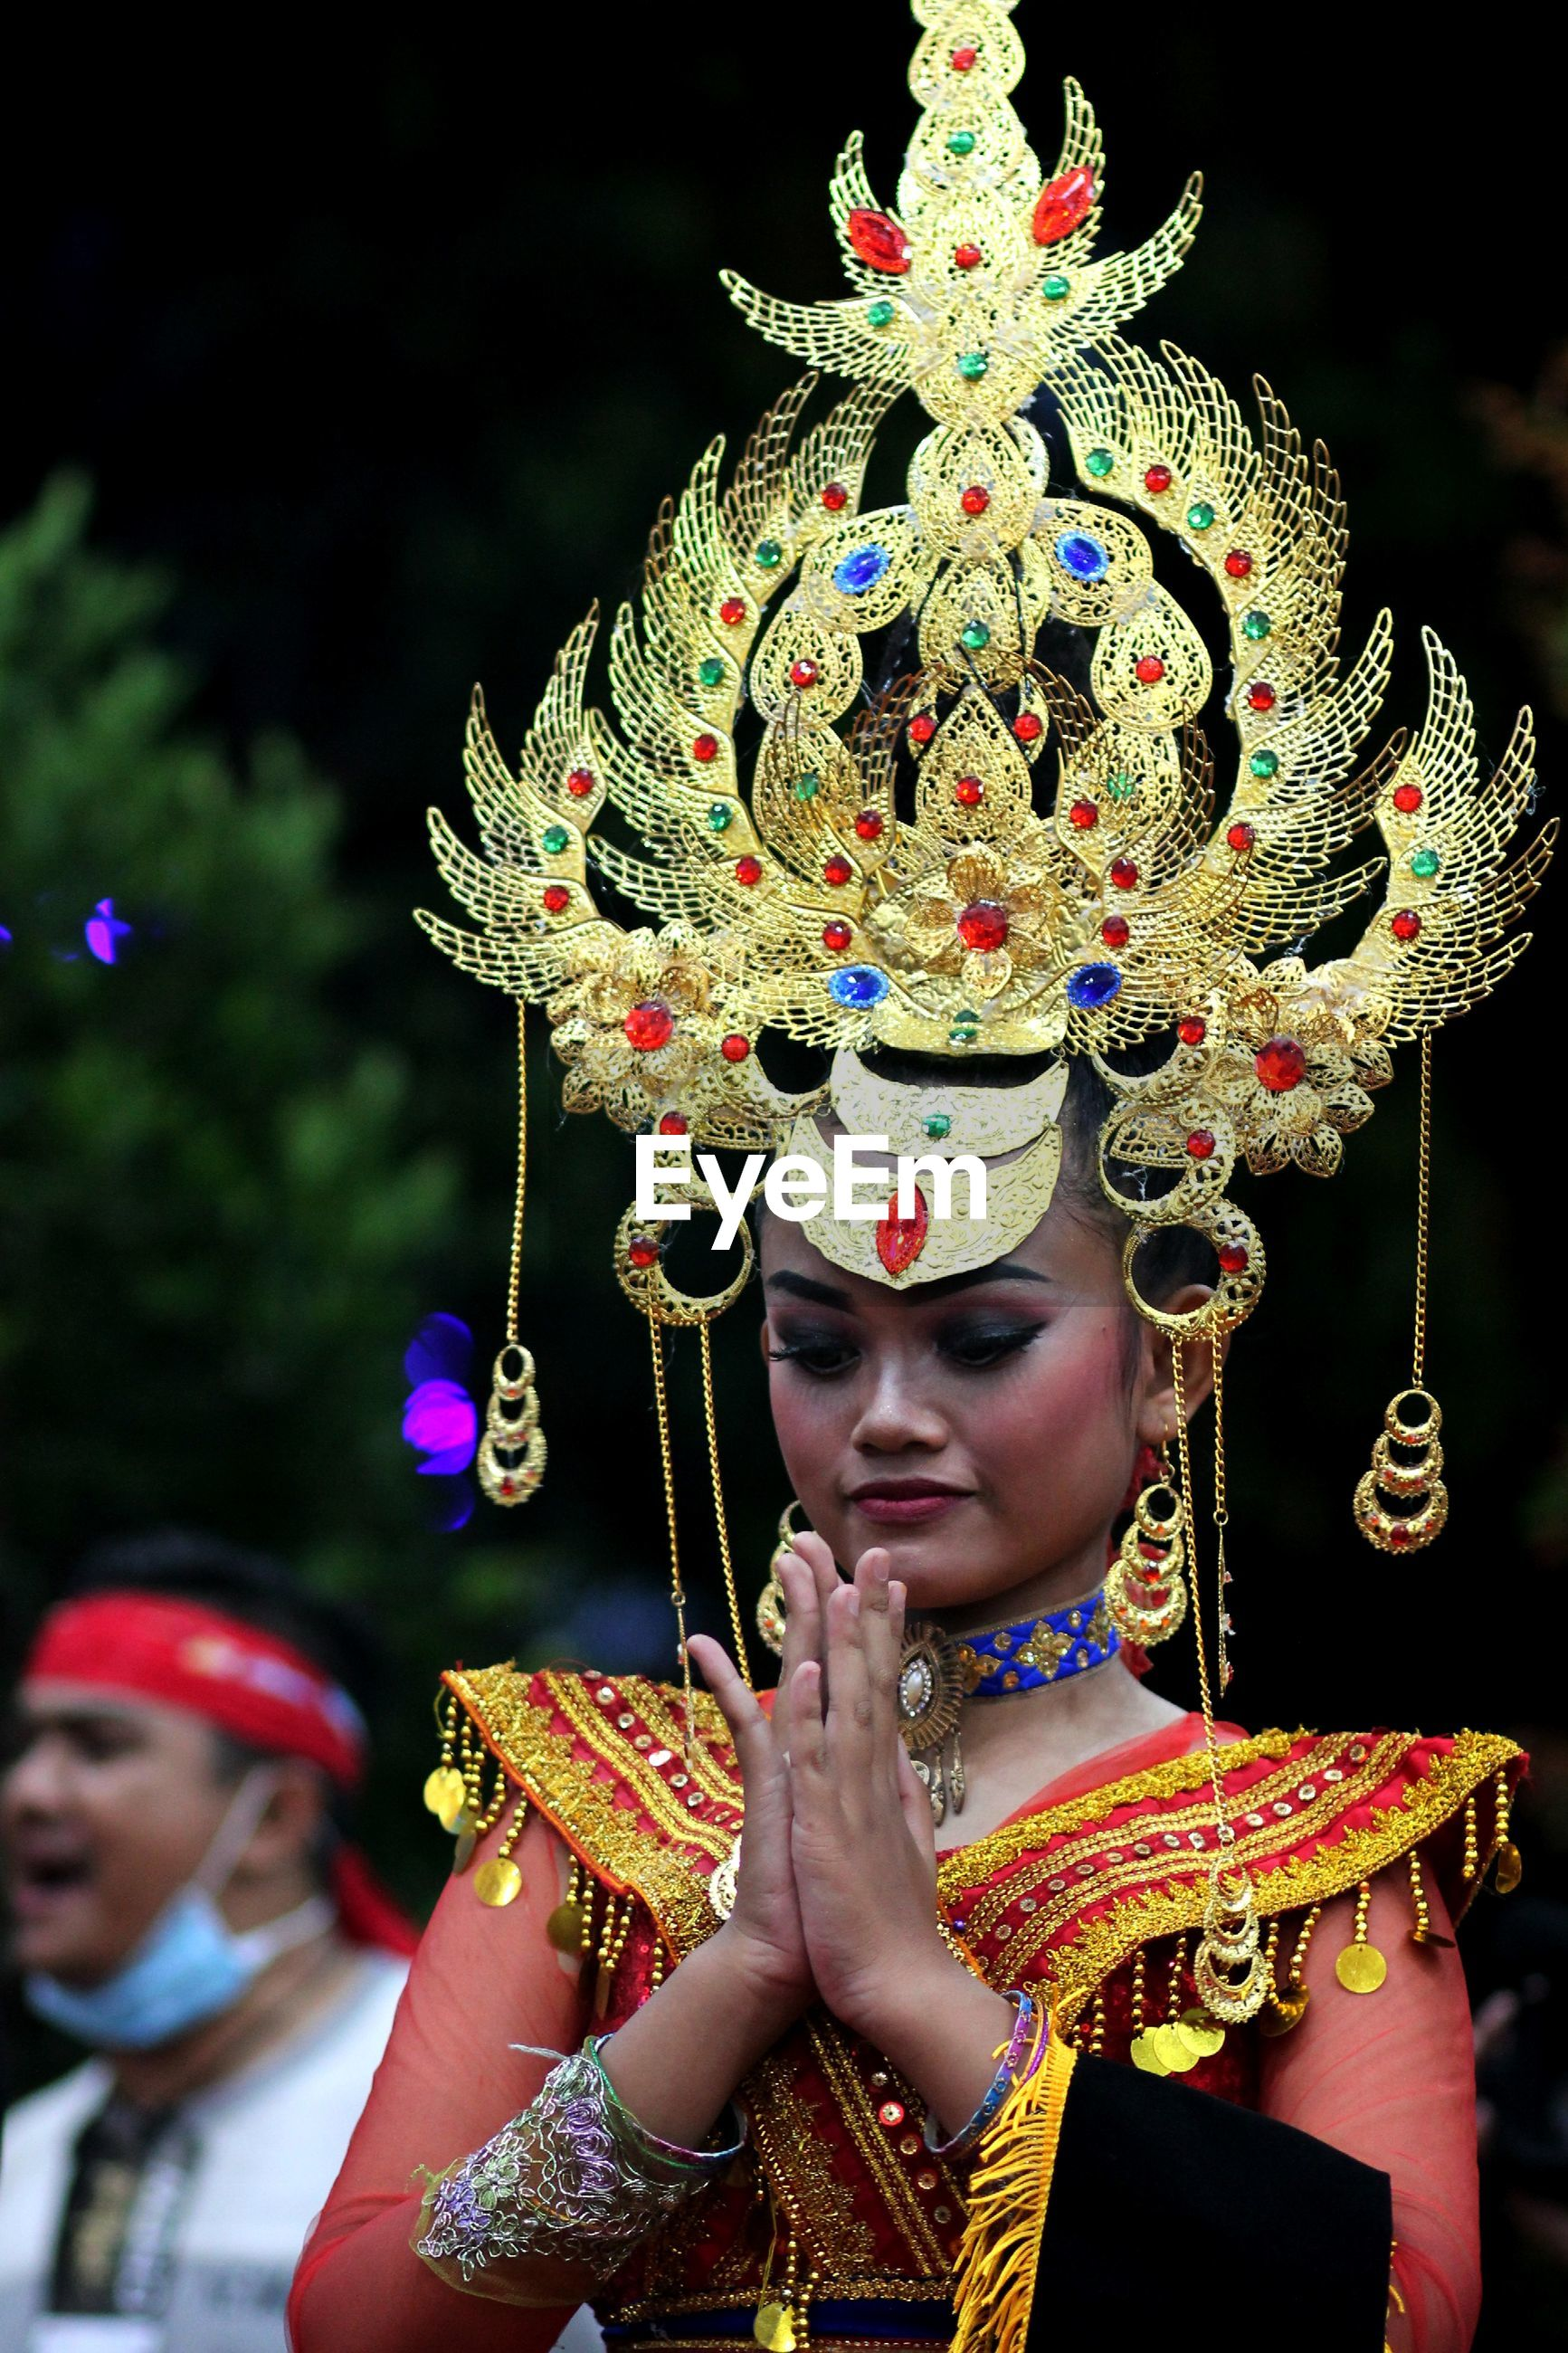 Young woman wearing headdress during festival